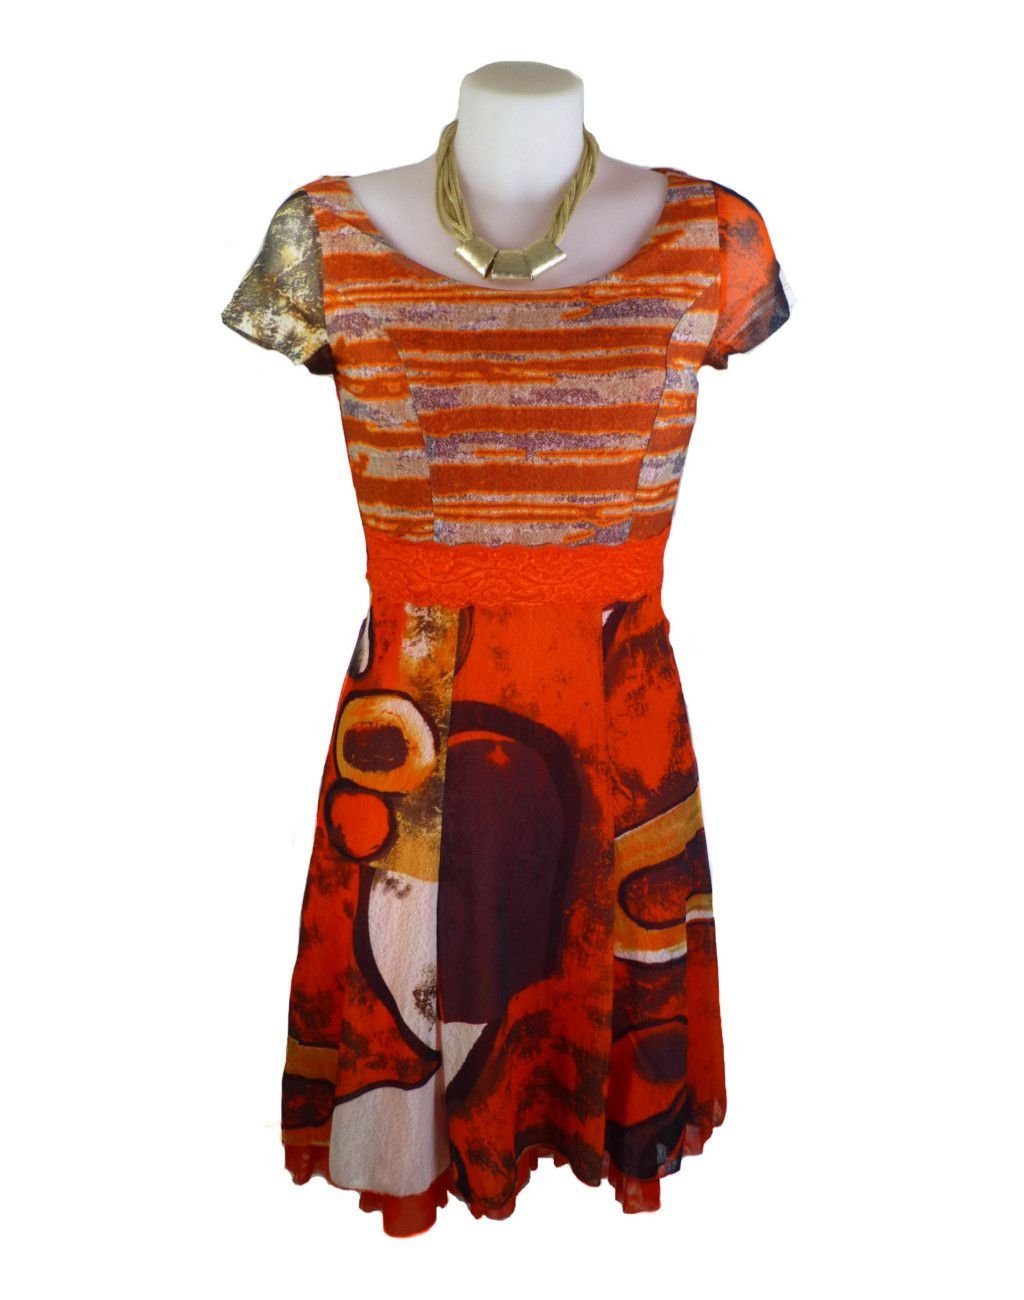 LULU-H French Style Orange Dress 06-8